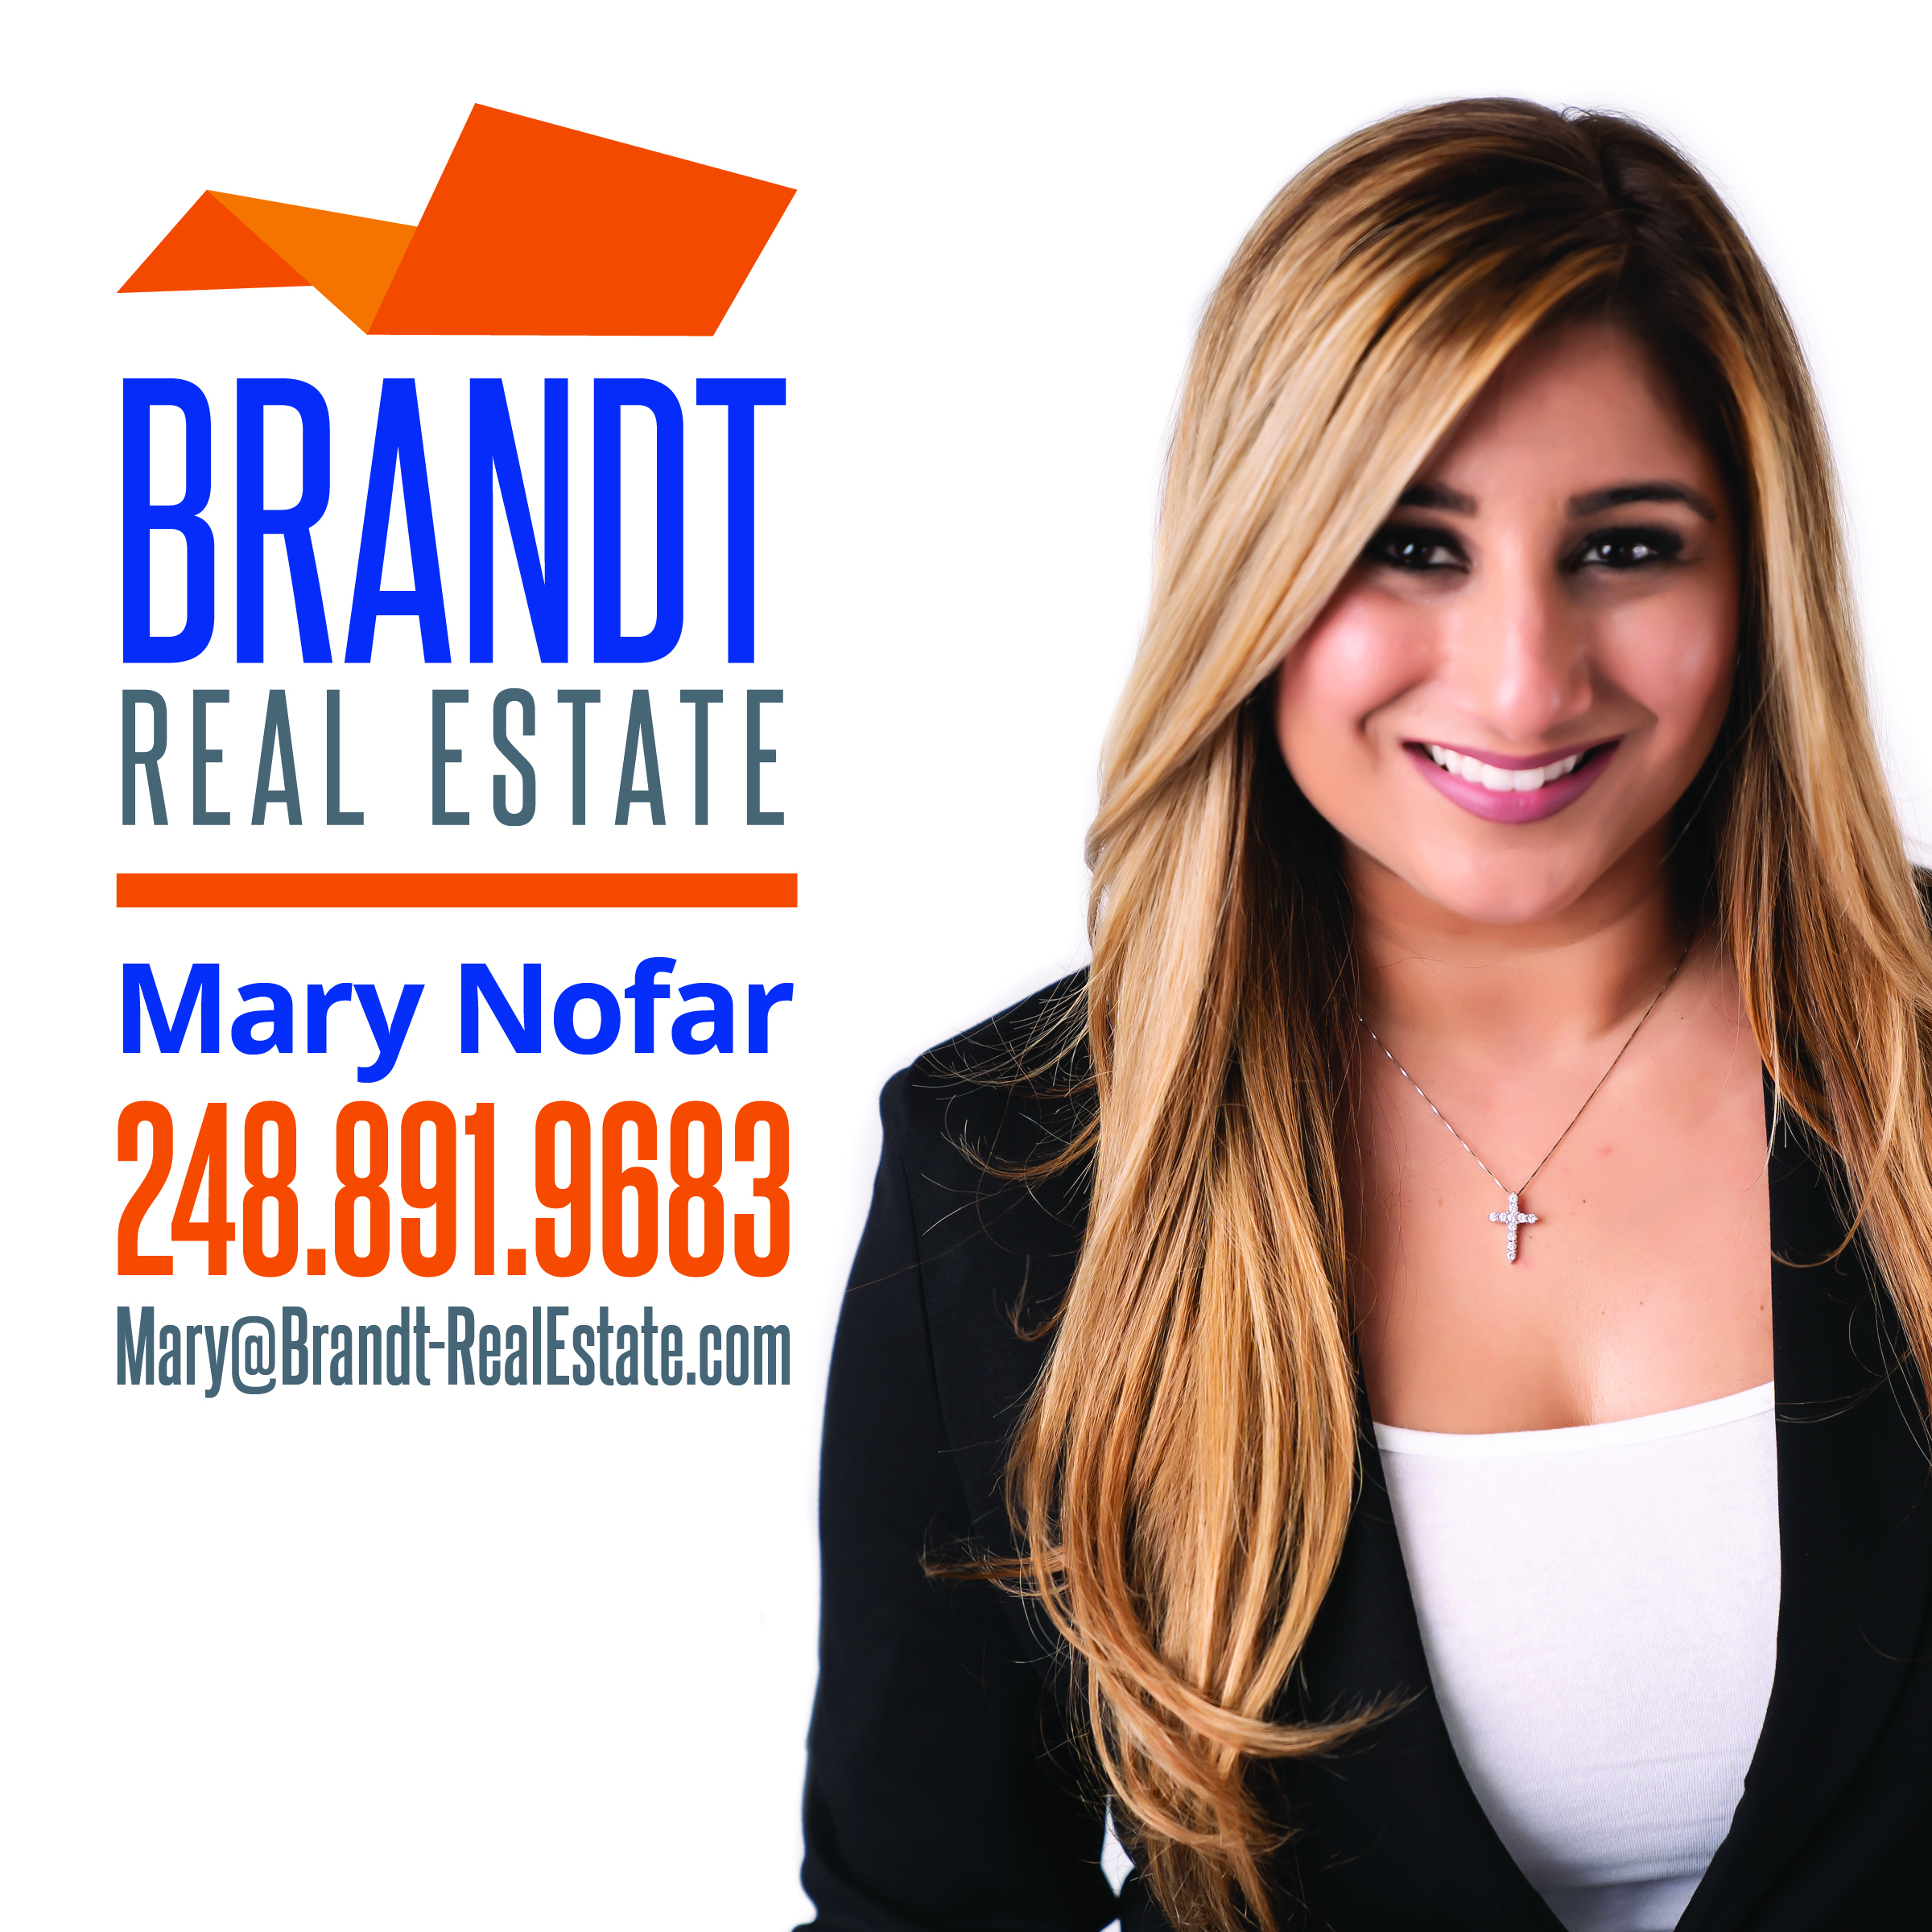 Mary Nofar - Brandt Real Estate